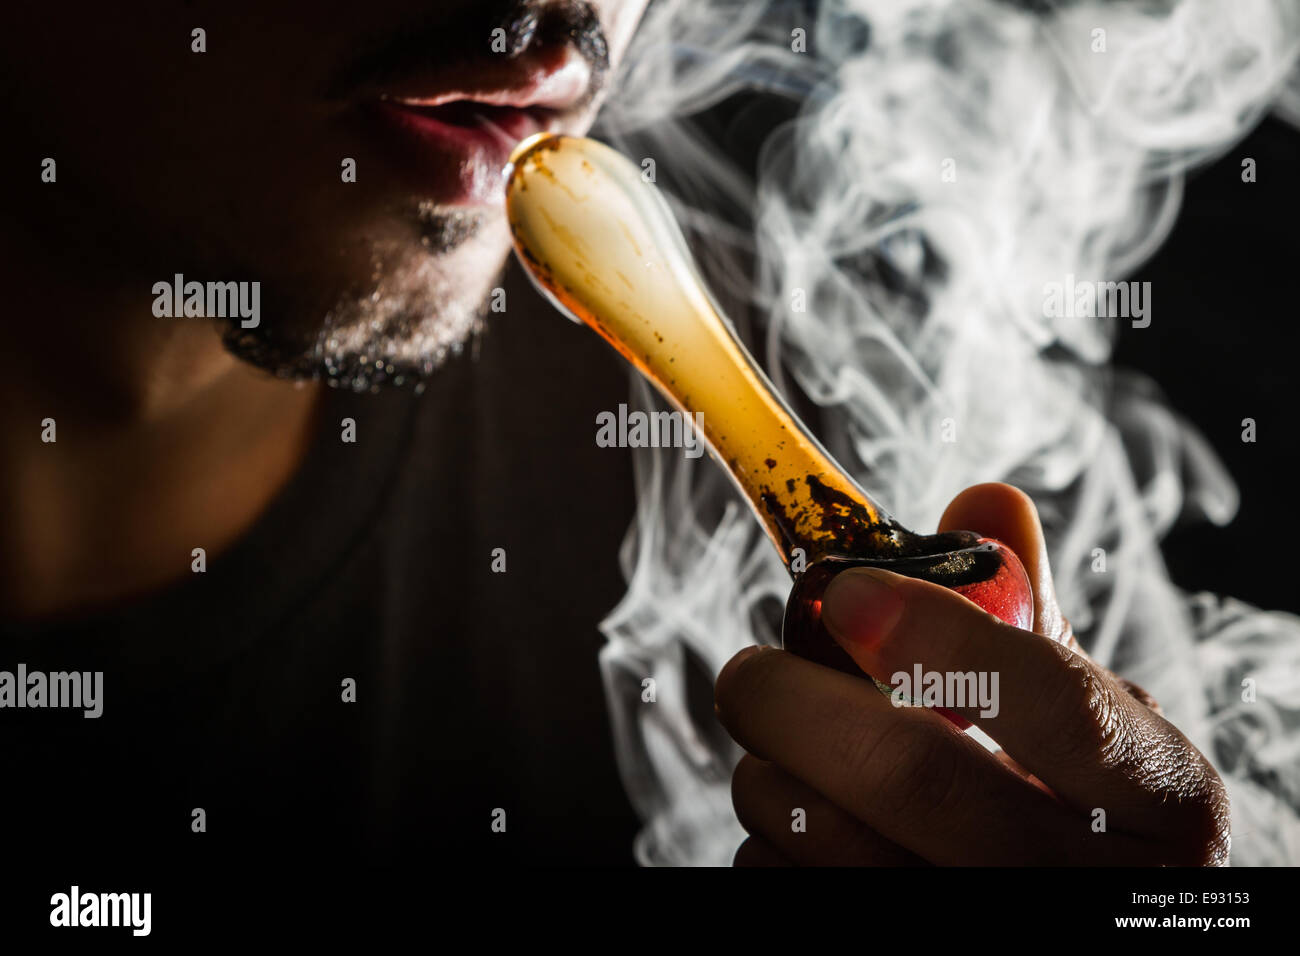 studio shoot with model simulating smoking pot with a pipe in a dark high contrast image - Stock Image